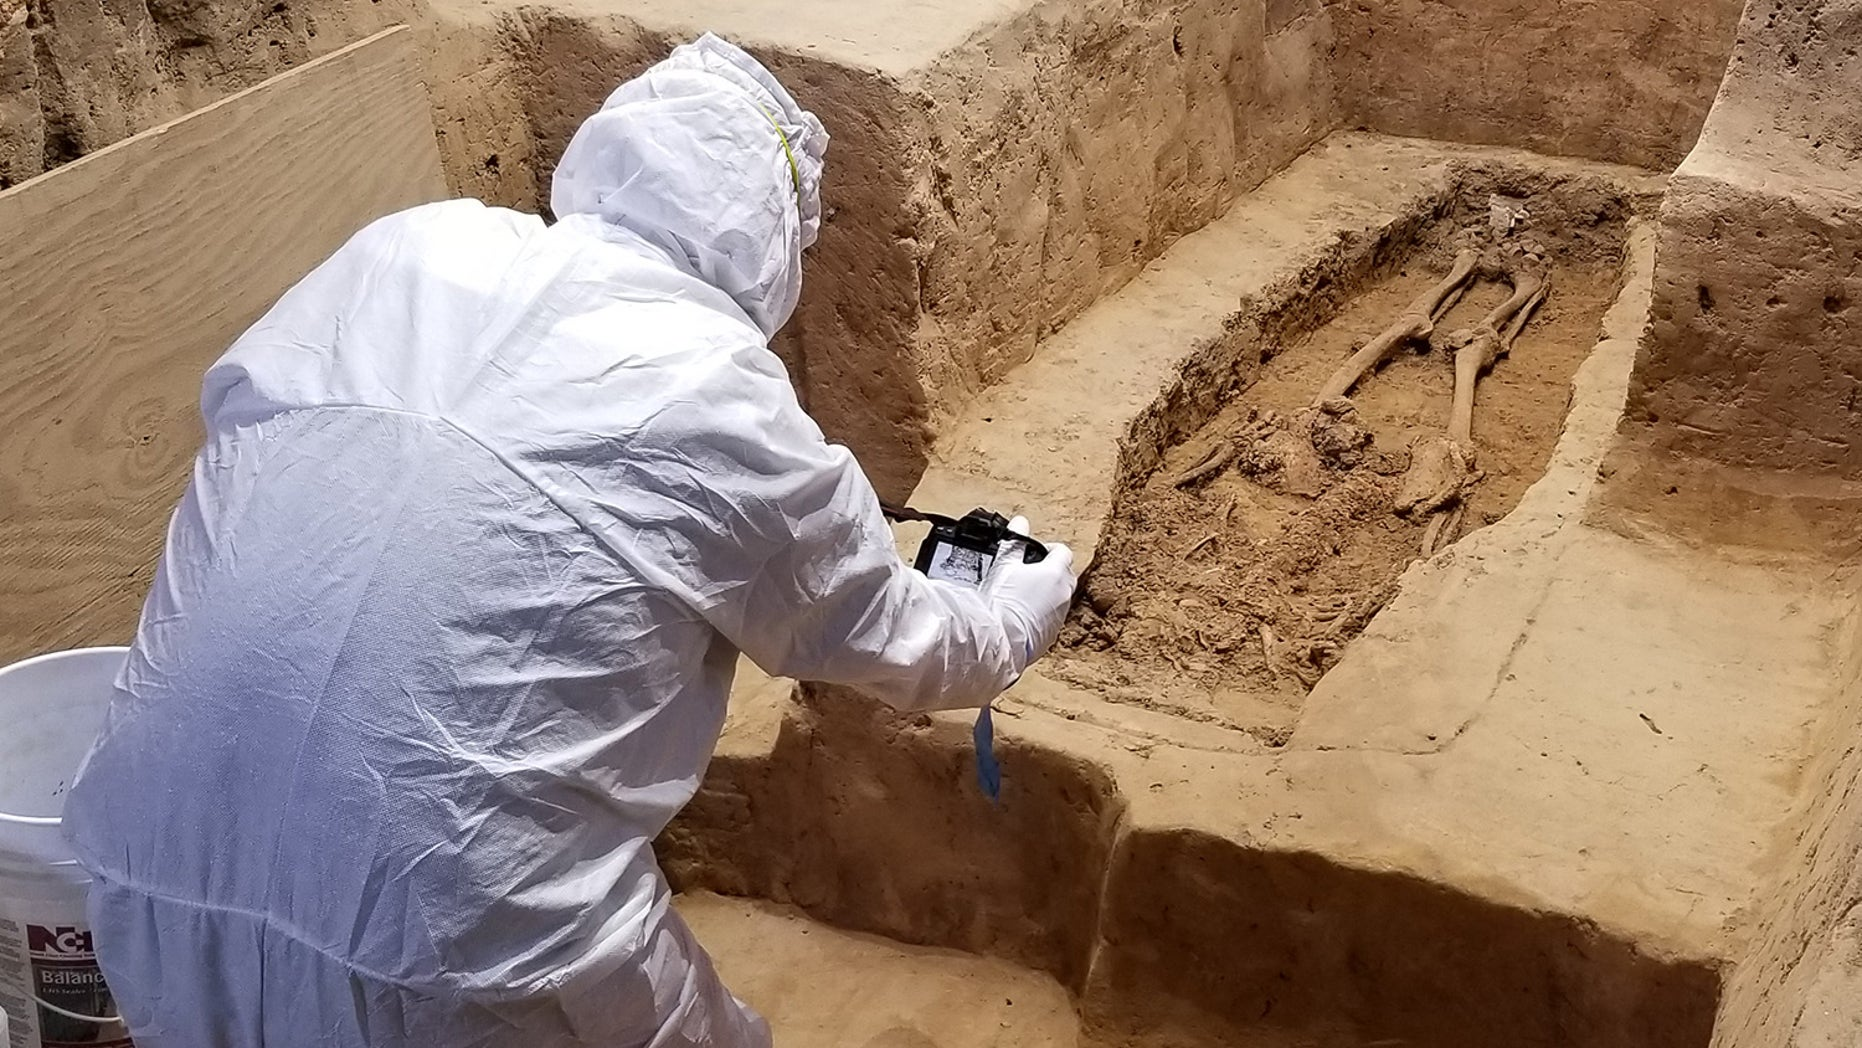 An archaeologist investigates the burial while wearing a suit that will minimize contamination to the historical site.